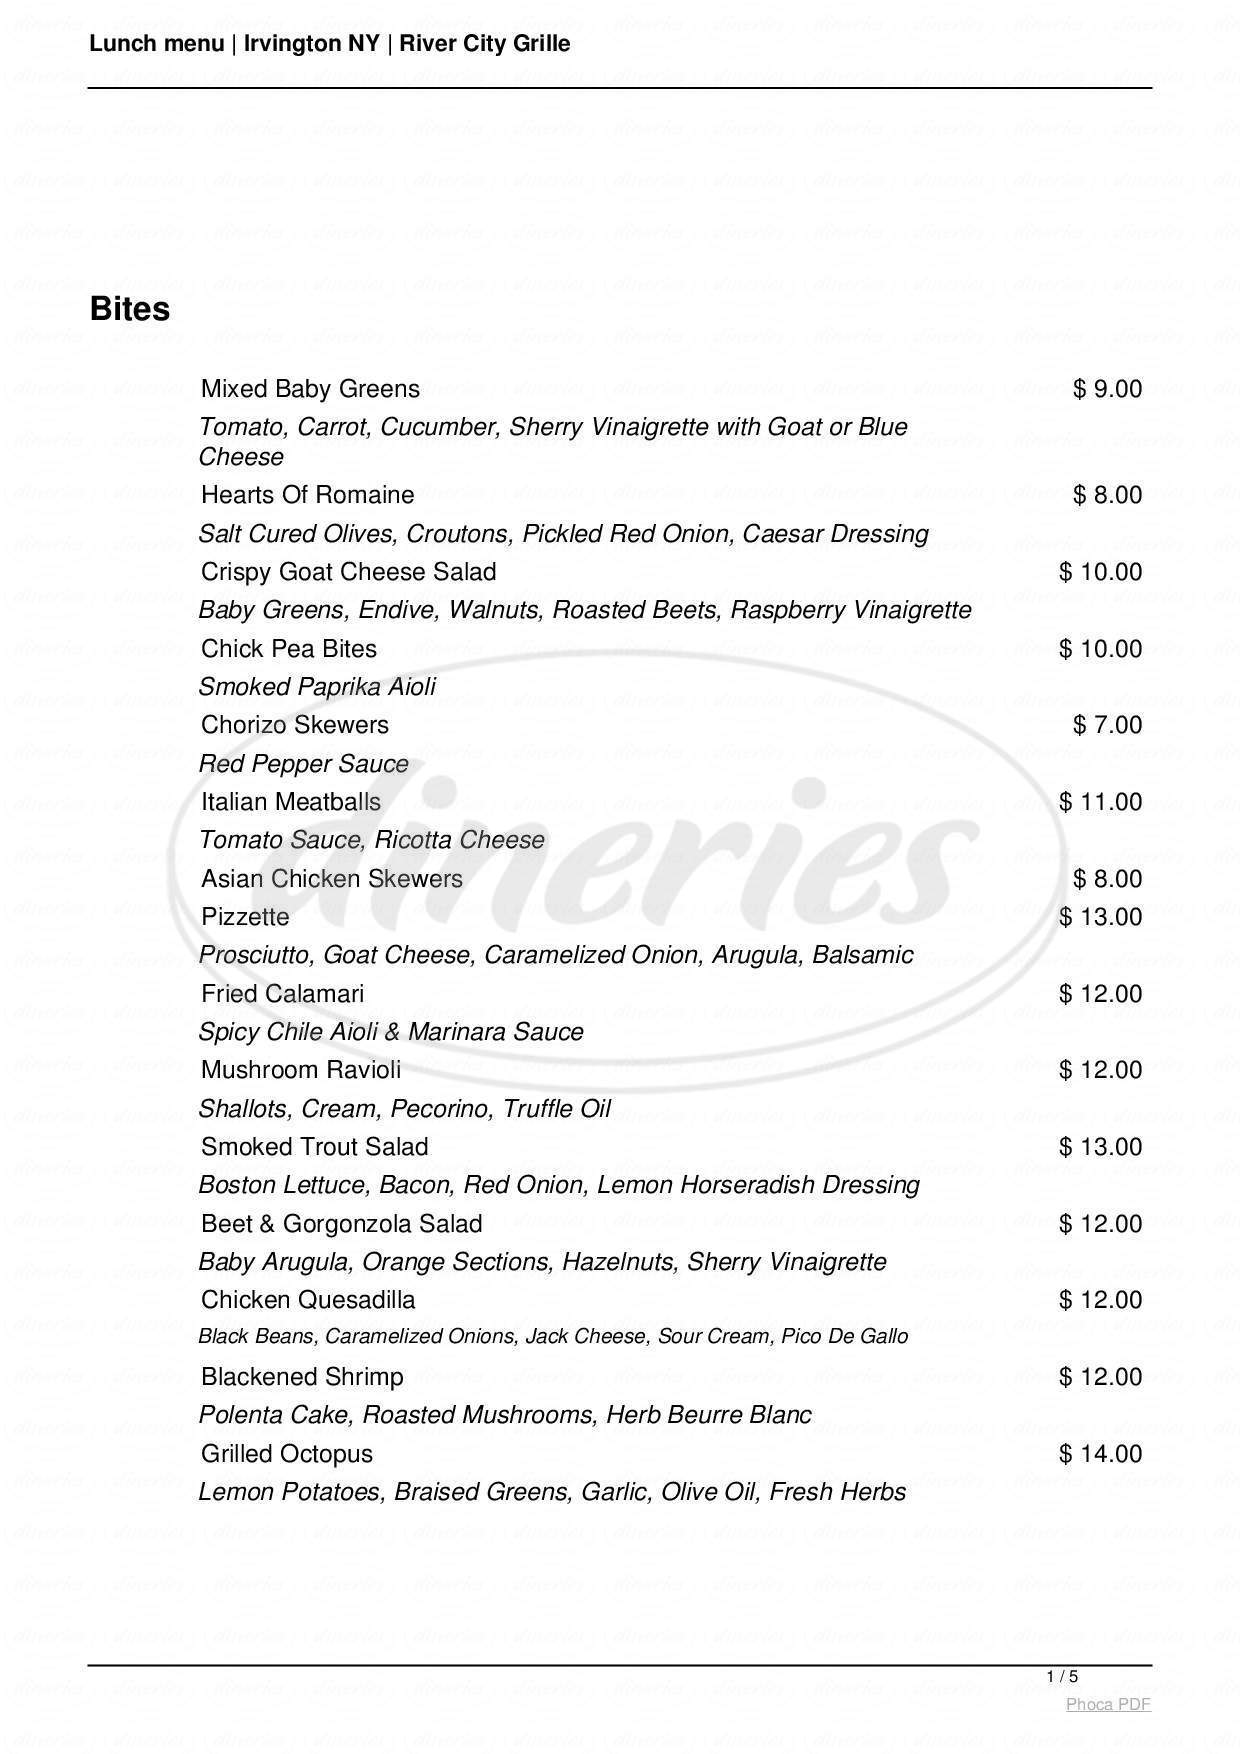 menu for River City Grille